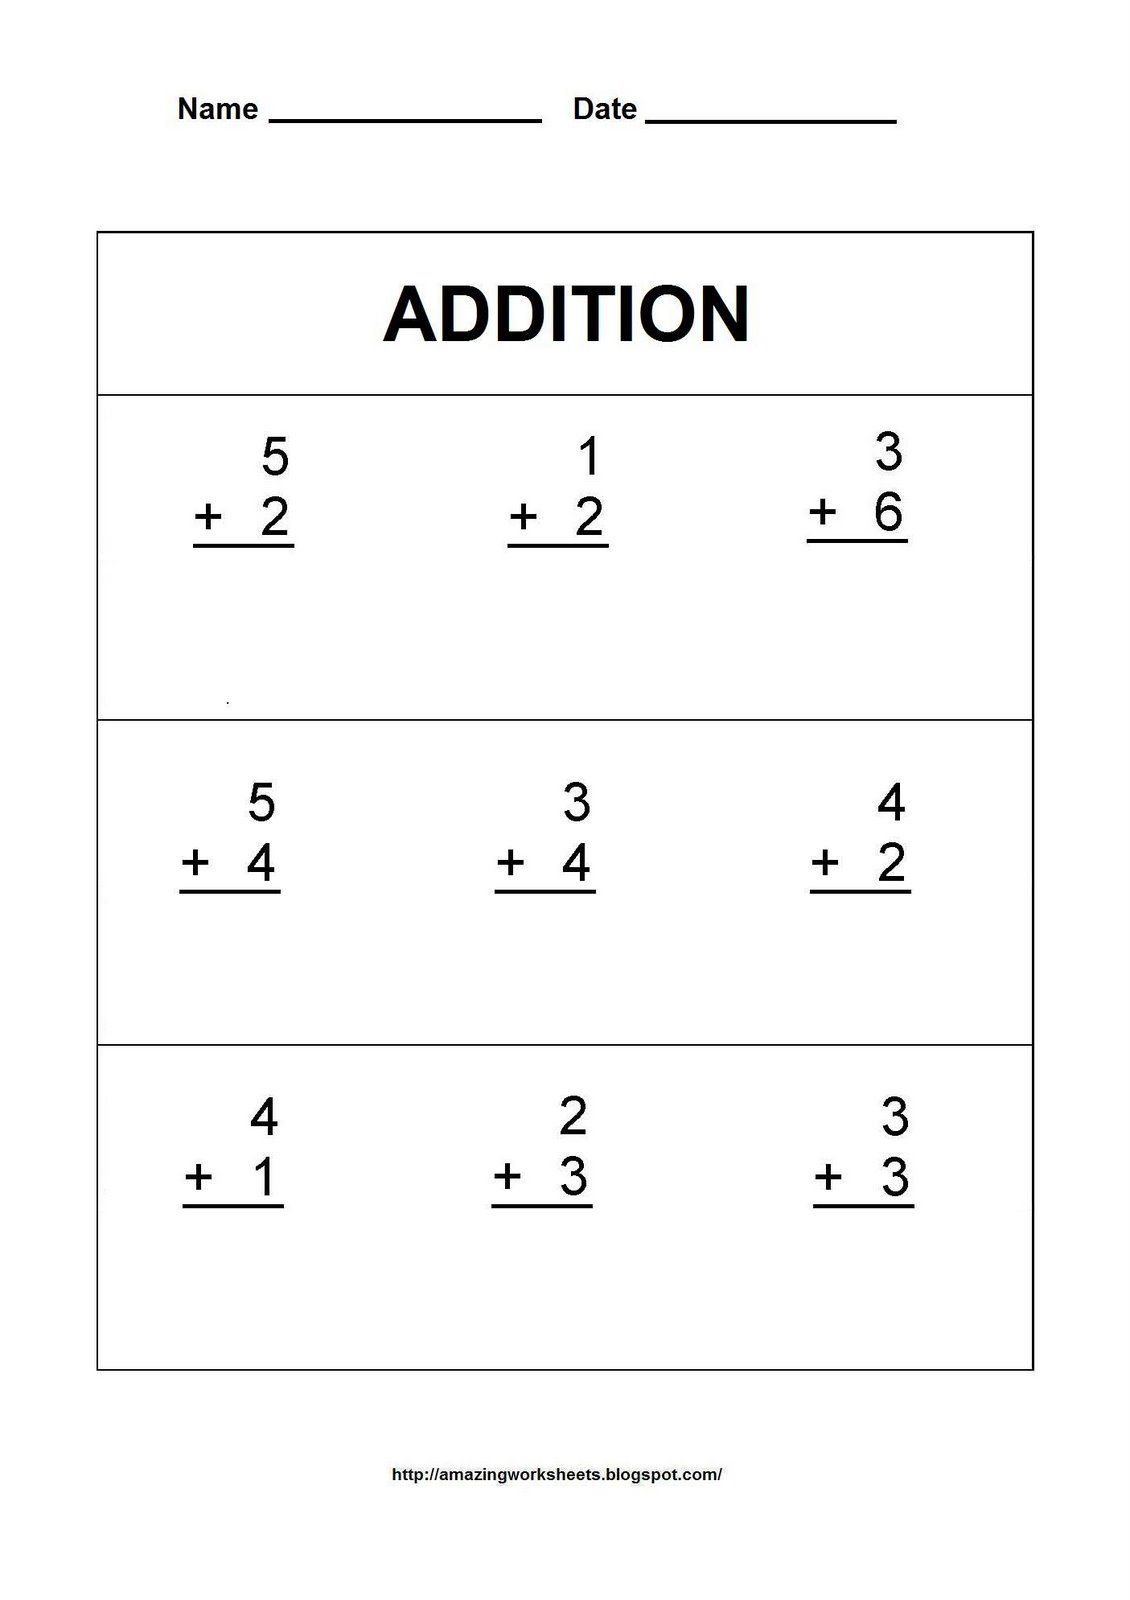 Addition Worksheets For First Grade Scalien – Vertical Addition Worksheet